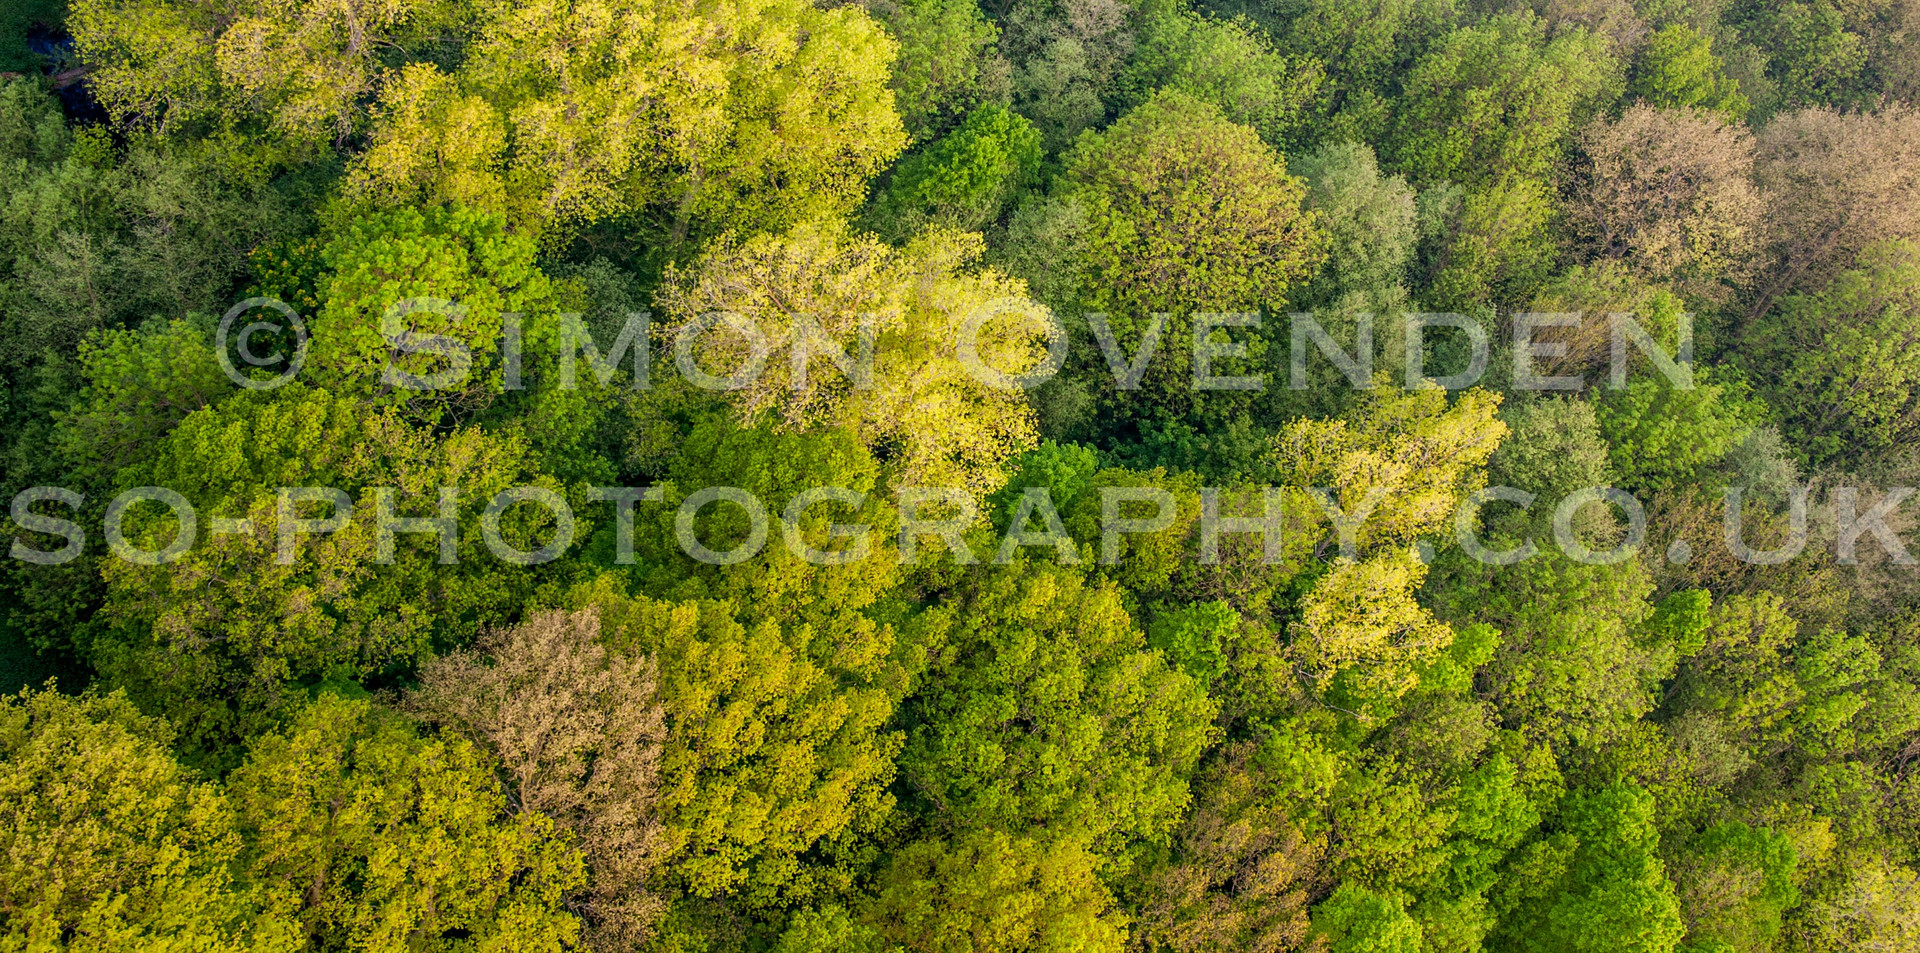 Above the Canopy